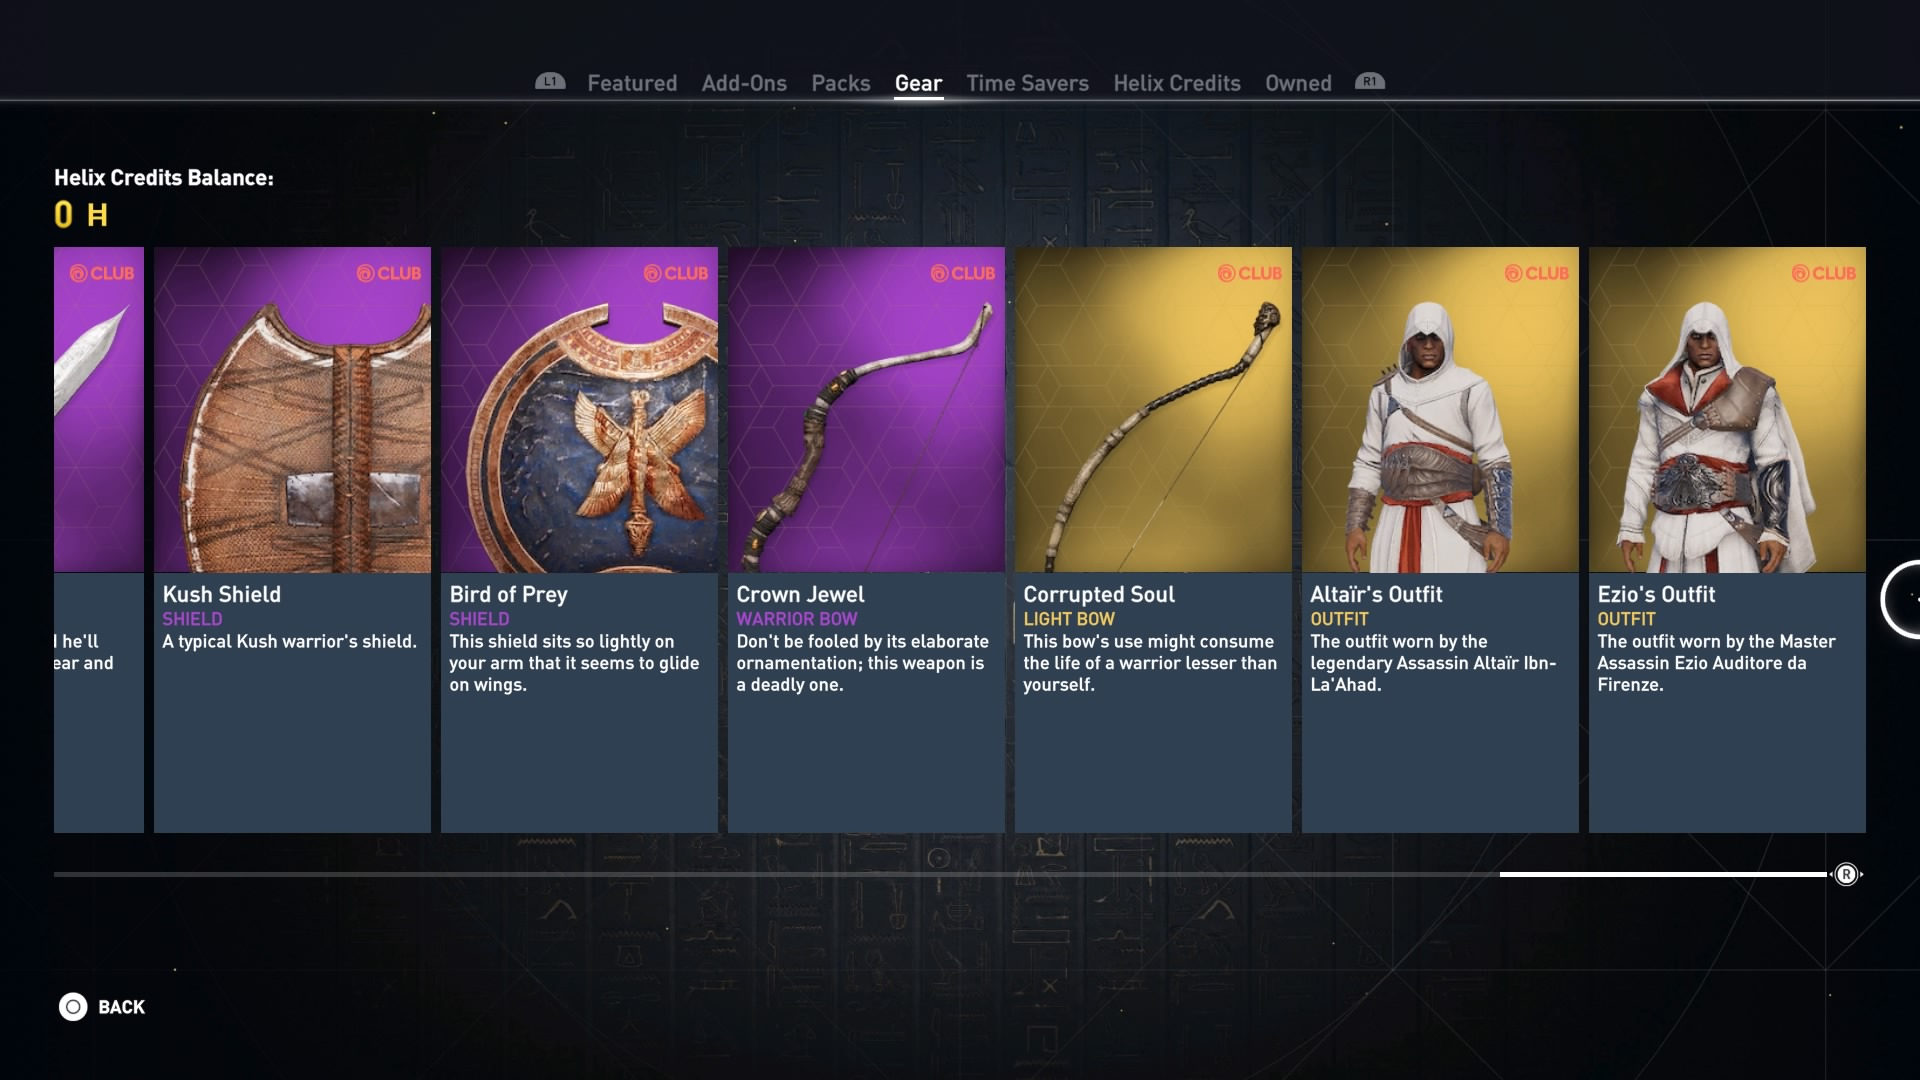 Assassin's Creed Origins – Ubisoft Club, Helix Rewards and Legacy Outfits